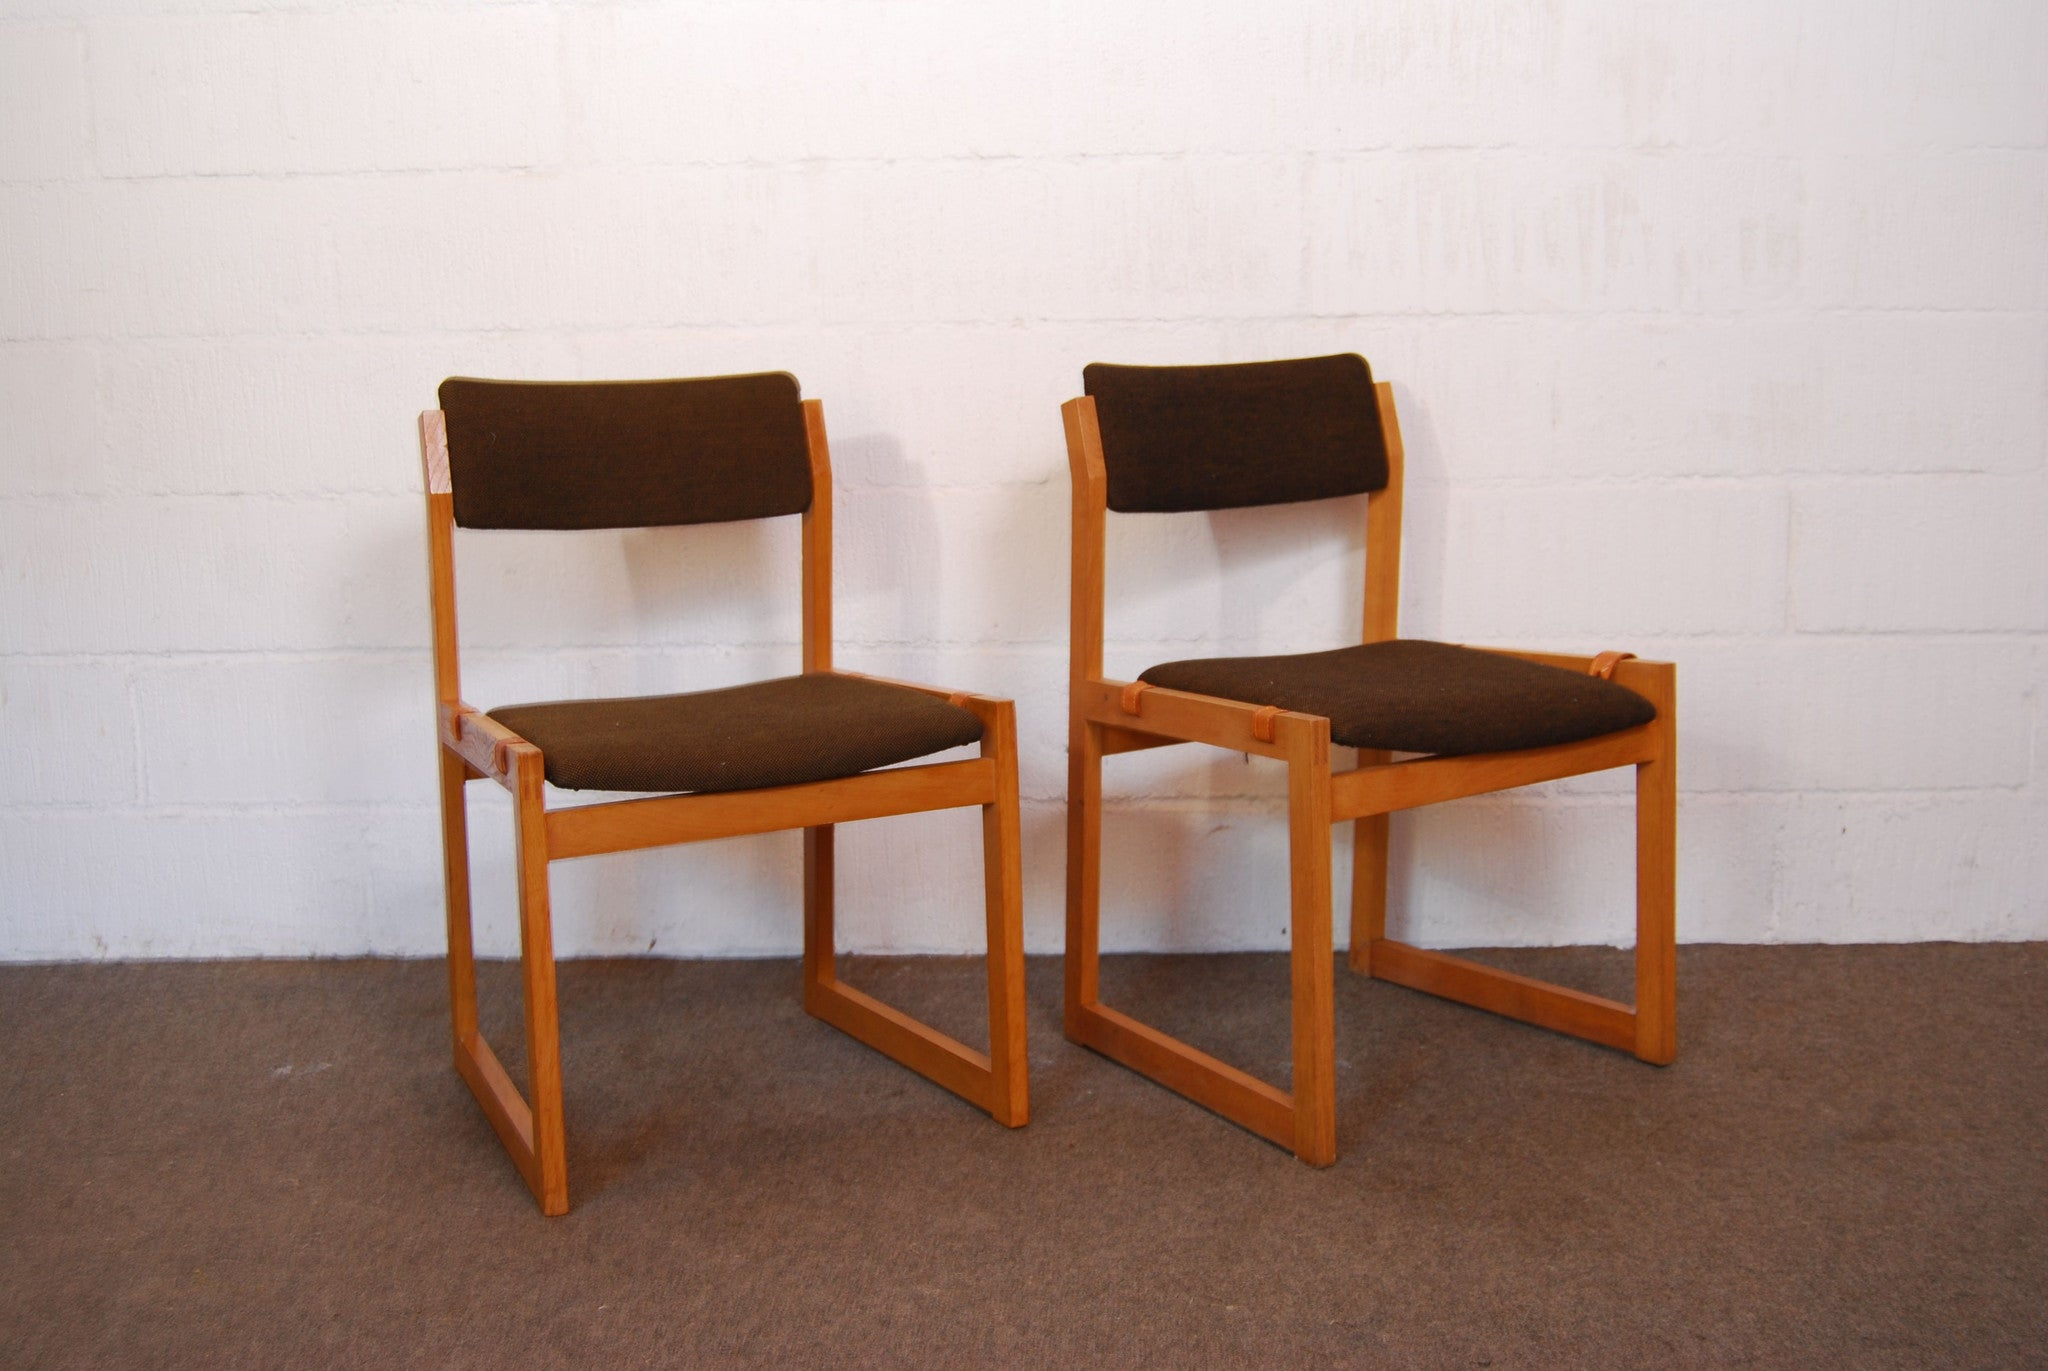 Pair of oak dining chairs by K.S. MÌübler